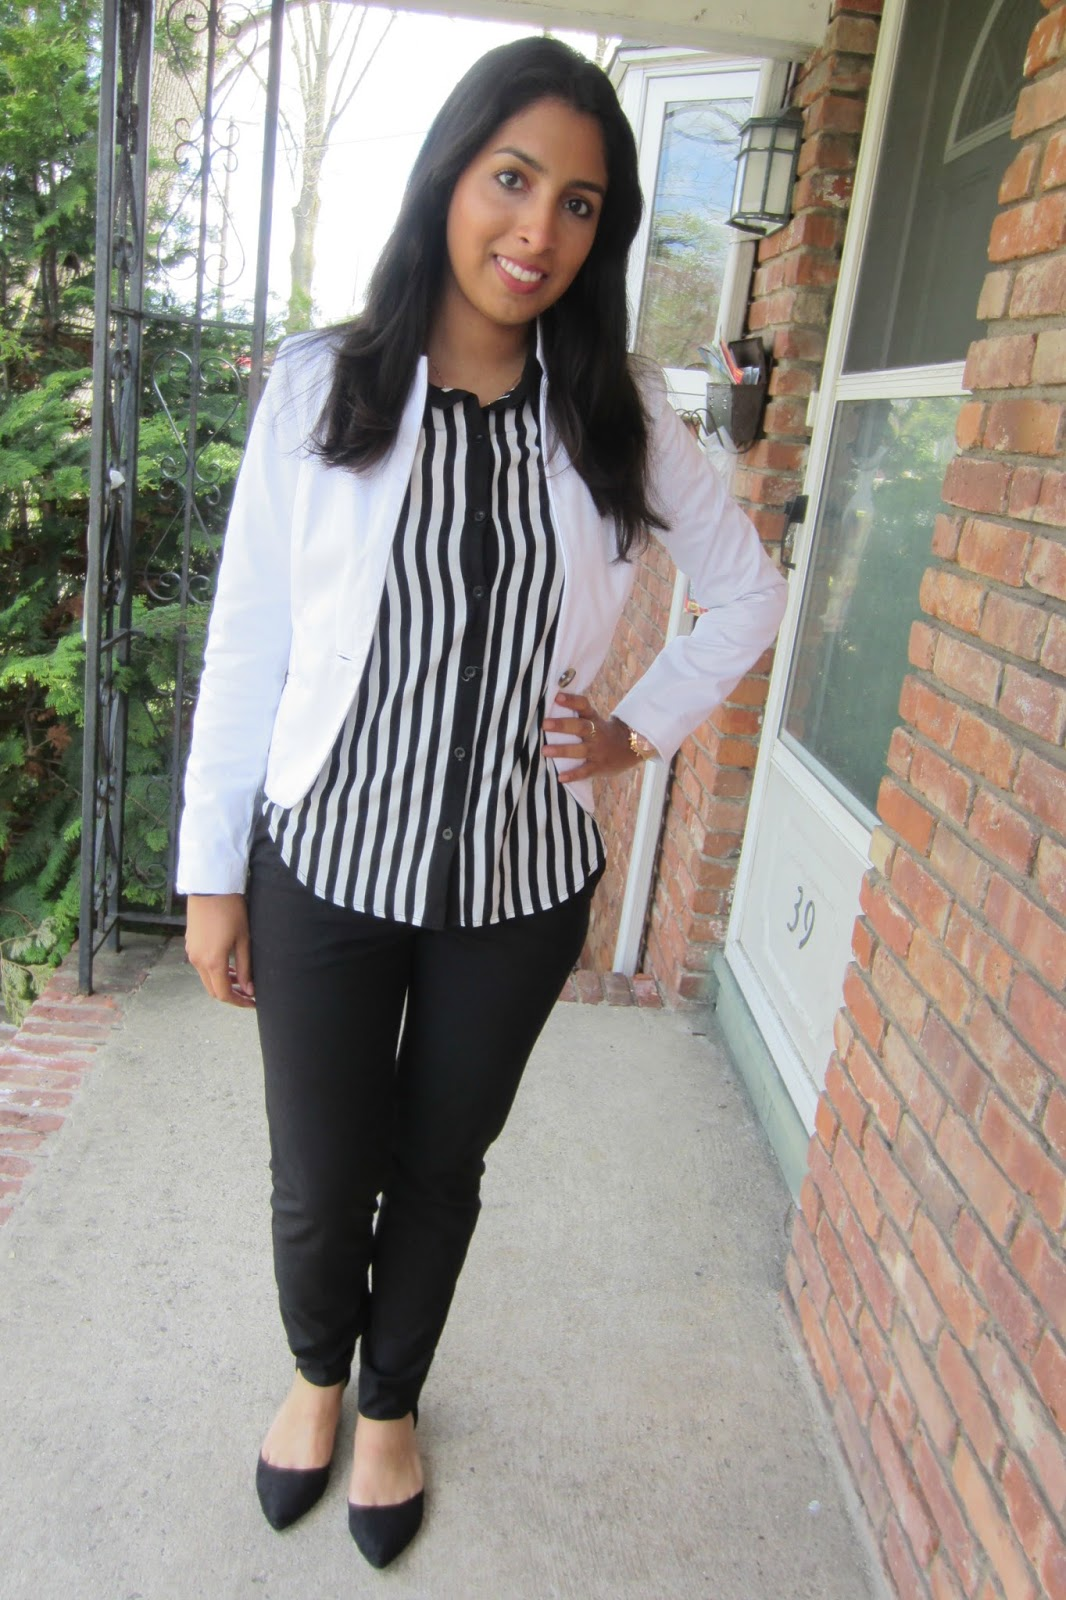 business casual the makeup league today s quick ootd is a business casual outfit that i wore to my internship everyone has a different definition of business casual and it varies based on